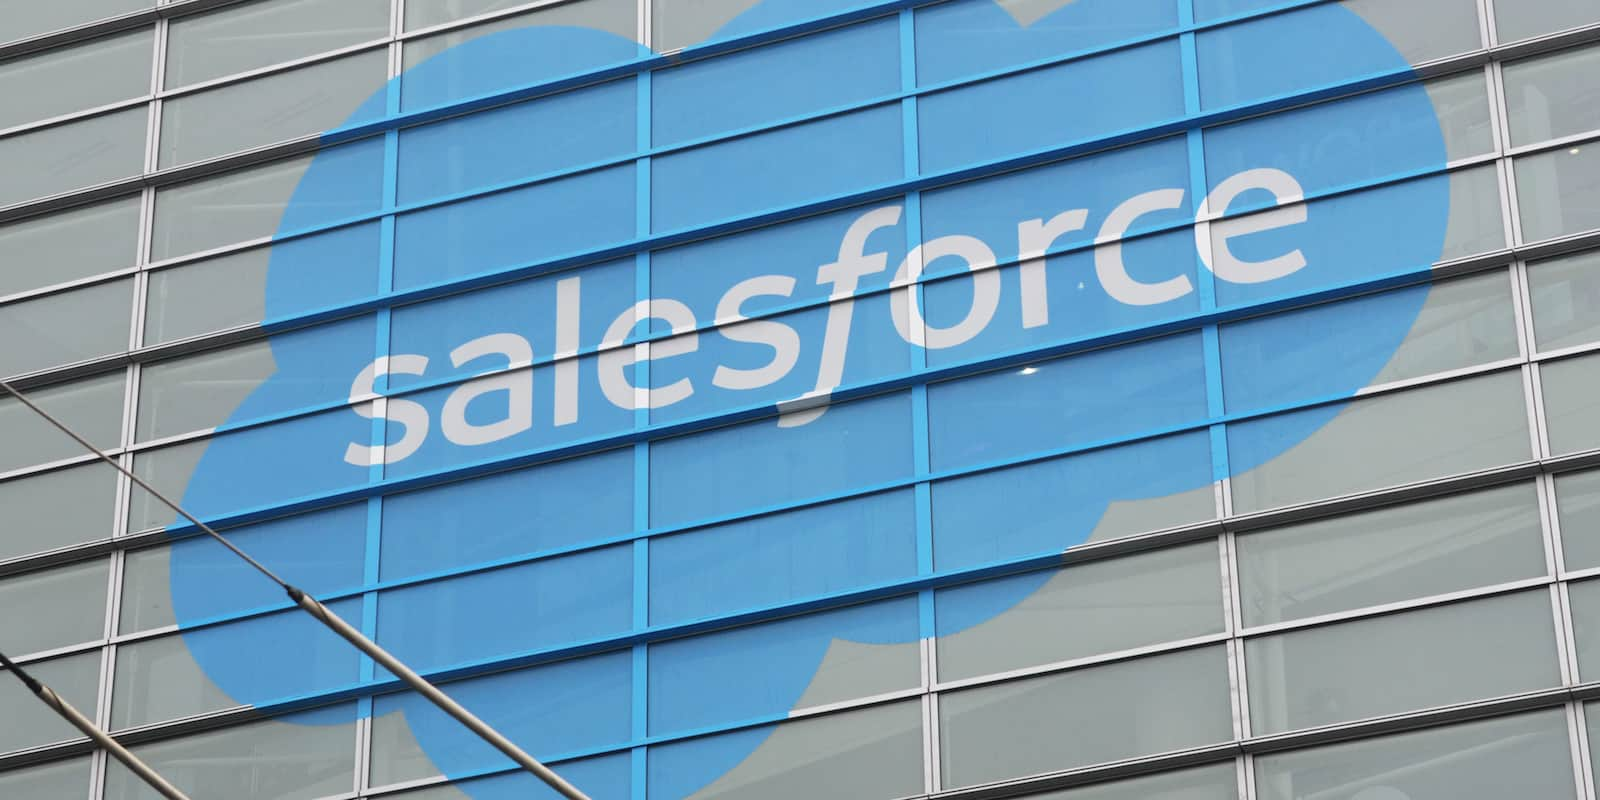 Become a master of Salesforce, the go-to customer relationship management platform.